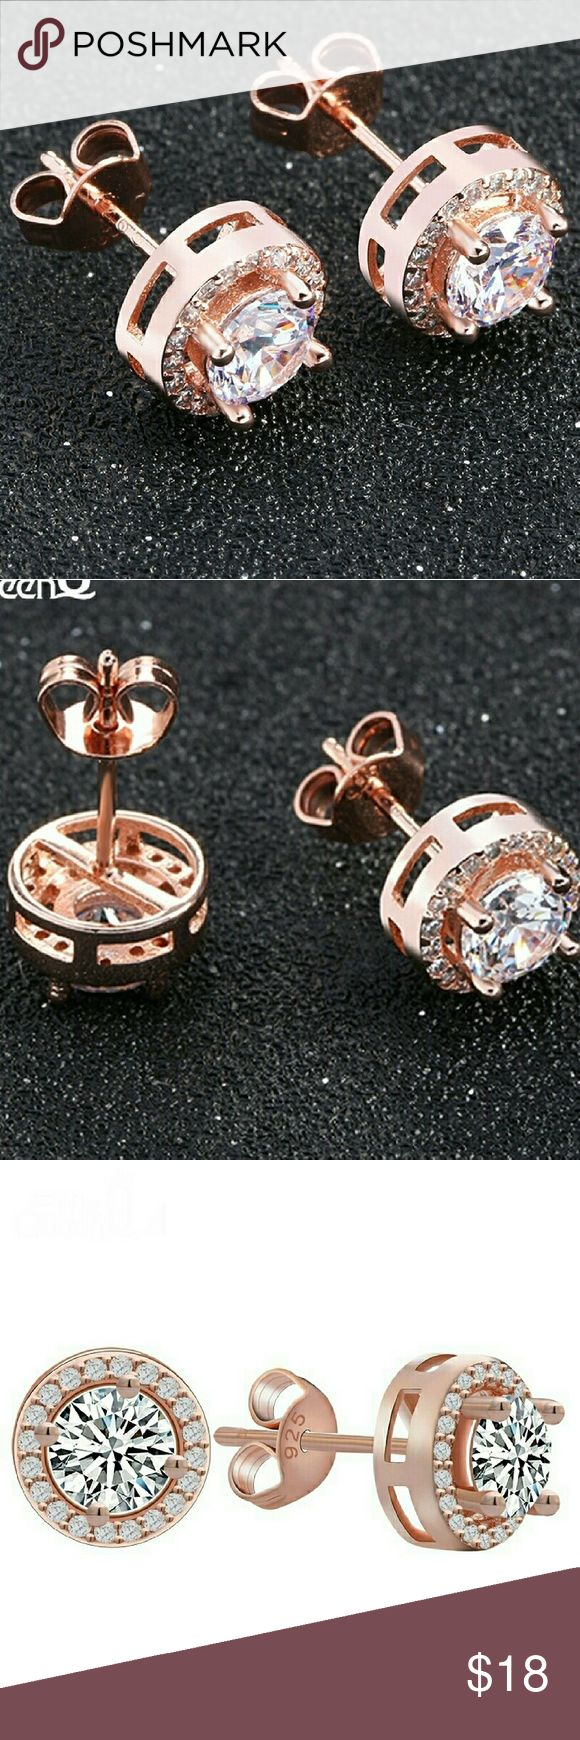 10k Rose Gold 925 CZ Halo Stud Earrings Absolutely Gorgeous!!!!!  10K Rose Gold Filled 0.75 ct Hearts and Arrows Cushion Halo Cut Triple A Austrian CZ Trendy Luxury Push-Back Stud Earrings.  Brand New Beautiful eye catching clear stones that brilliantly sparkle, glitter and glow in the light like real diamonds.   Stone: Triple A Austrian CZ  Carat: 0.75 ct Setting: Prong/Pave  Metal Type: 925 Sterling Silver  Surface Width: 6mm Cut: Hearts and Arrow Cushion Halo Brilliant  Finish: 10k Rose…